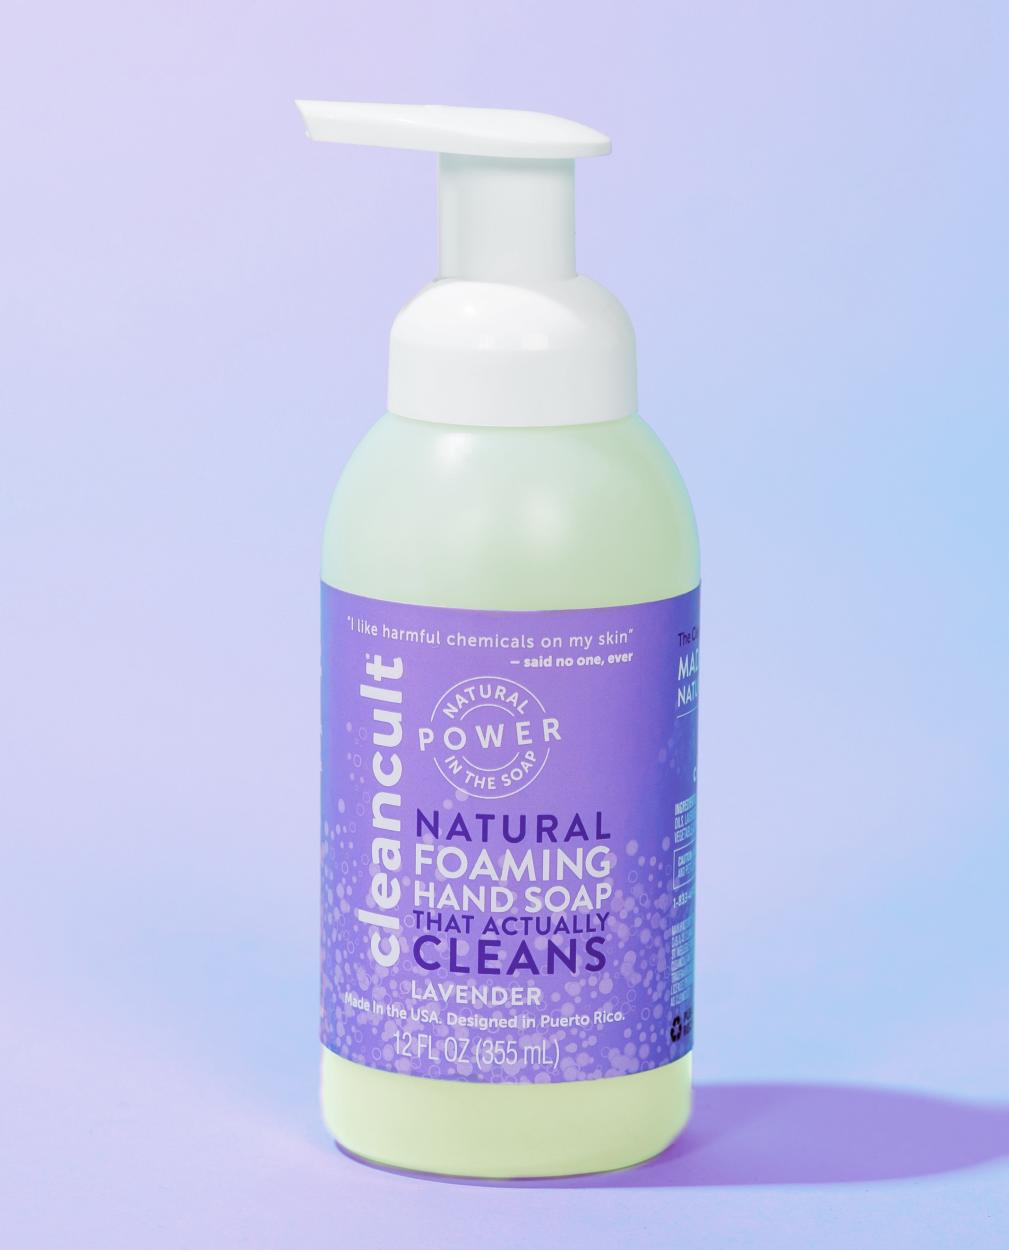 Natural Foaming Hand Soap